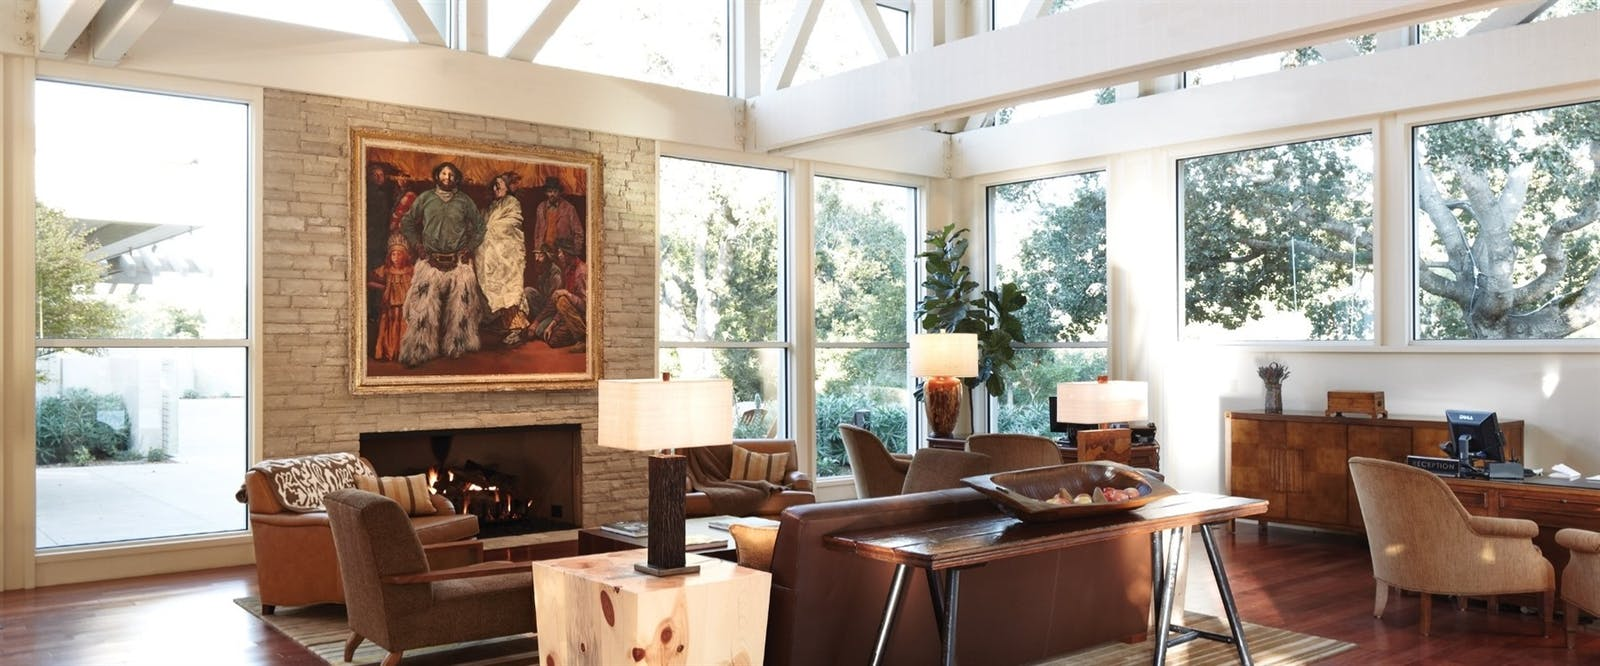 Lobby Lounge at Carmel Valley Ranch, California